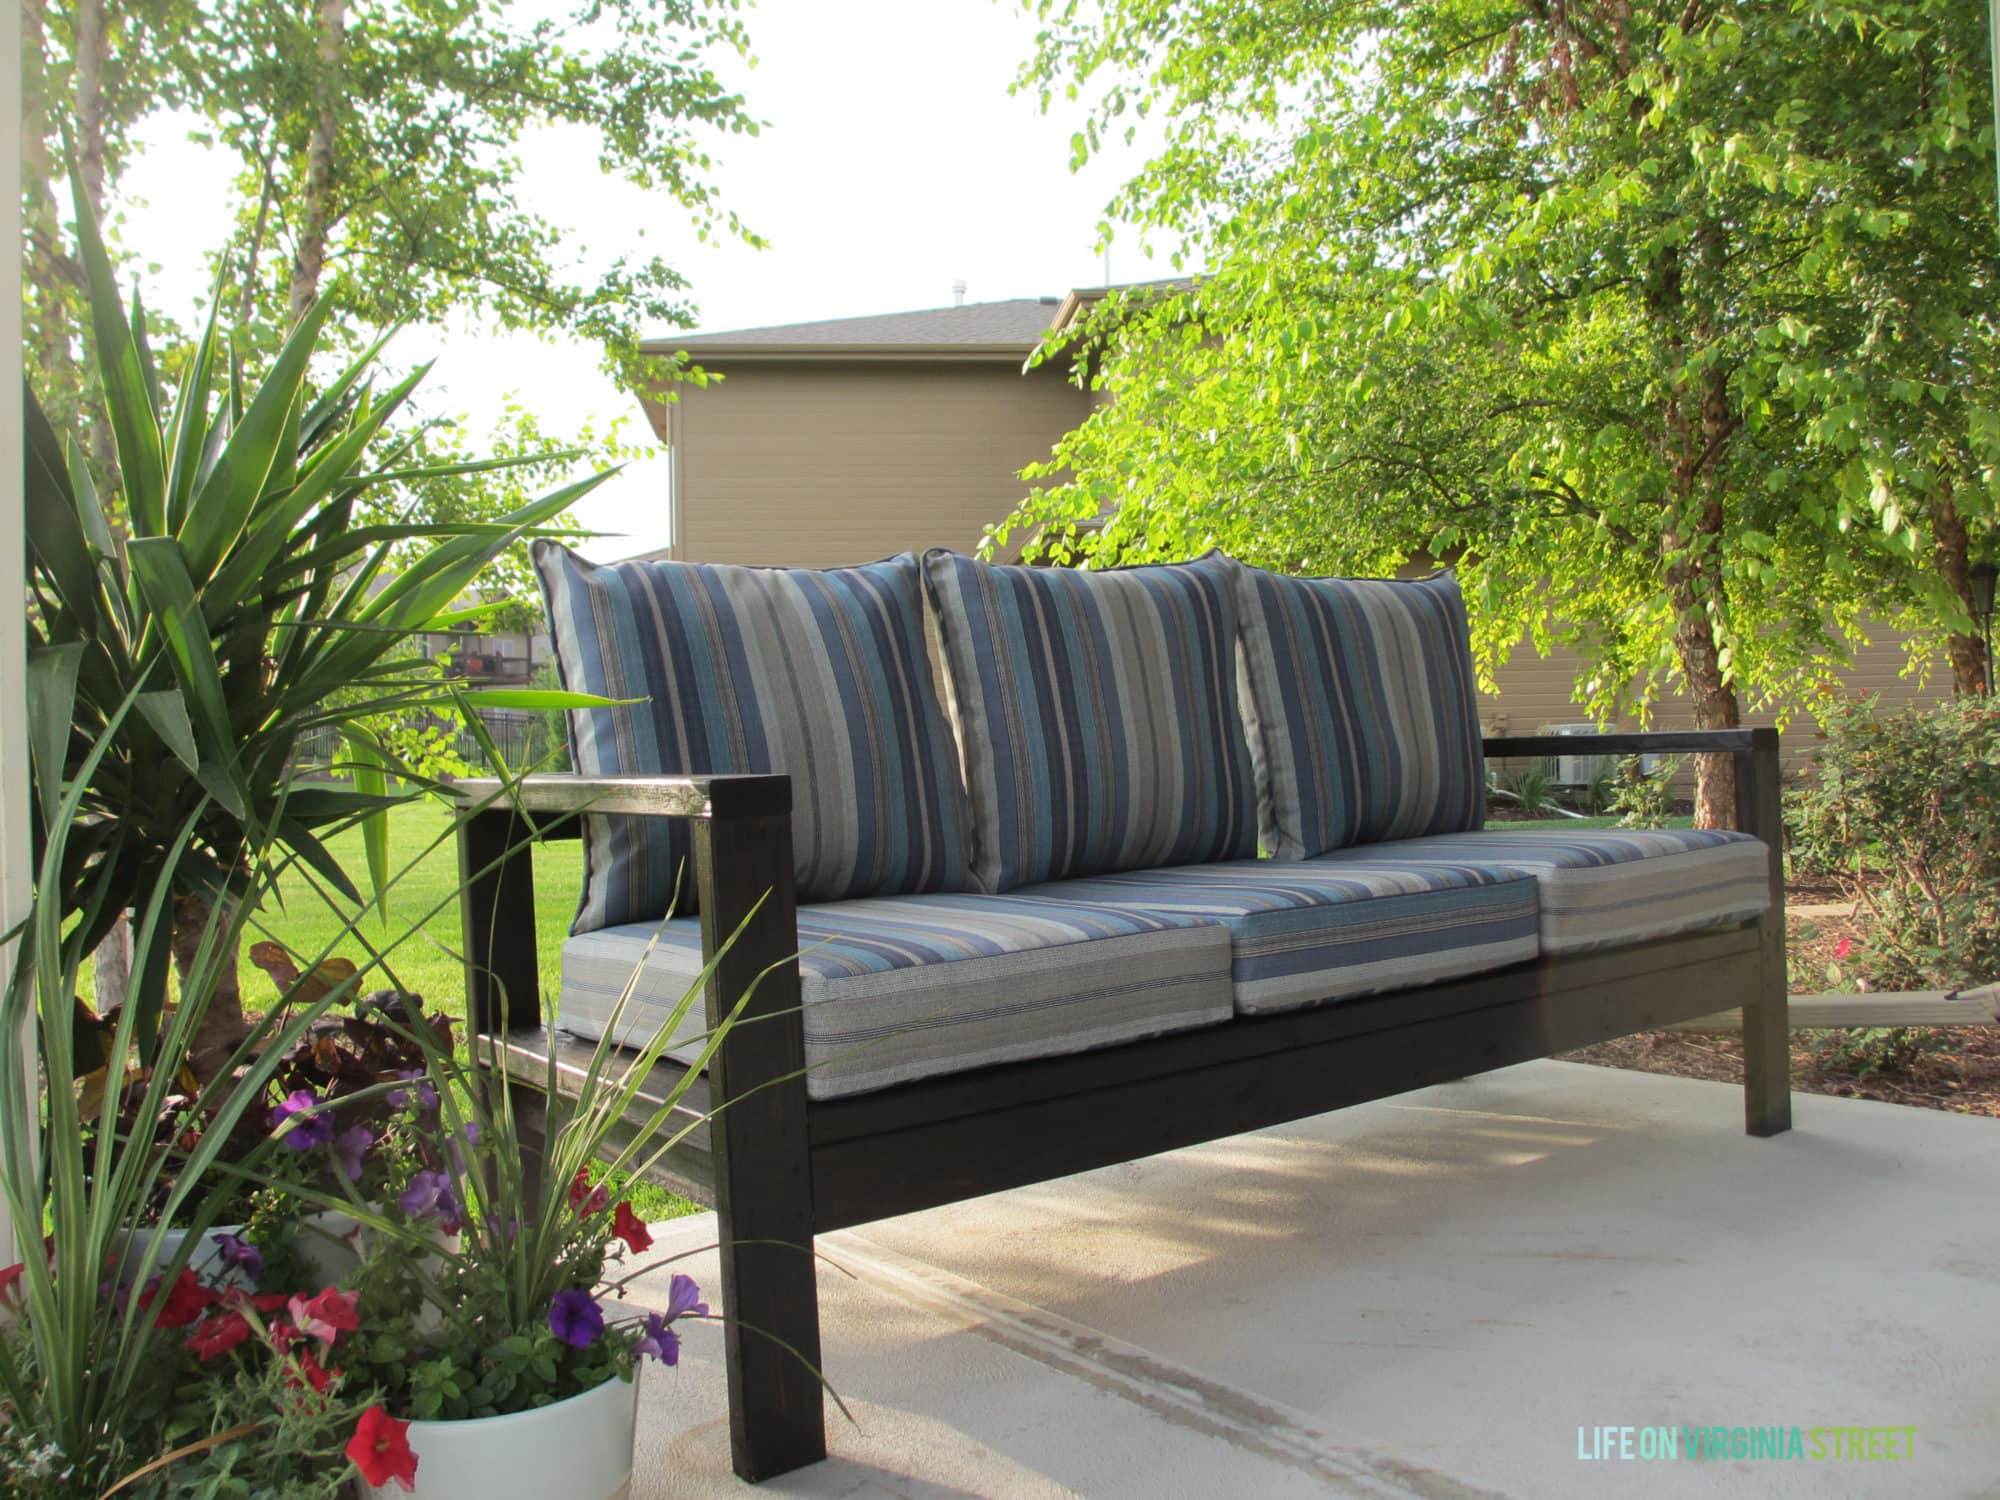 Diy outdoor sofa - Diy Outdoor Couch Finished